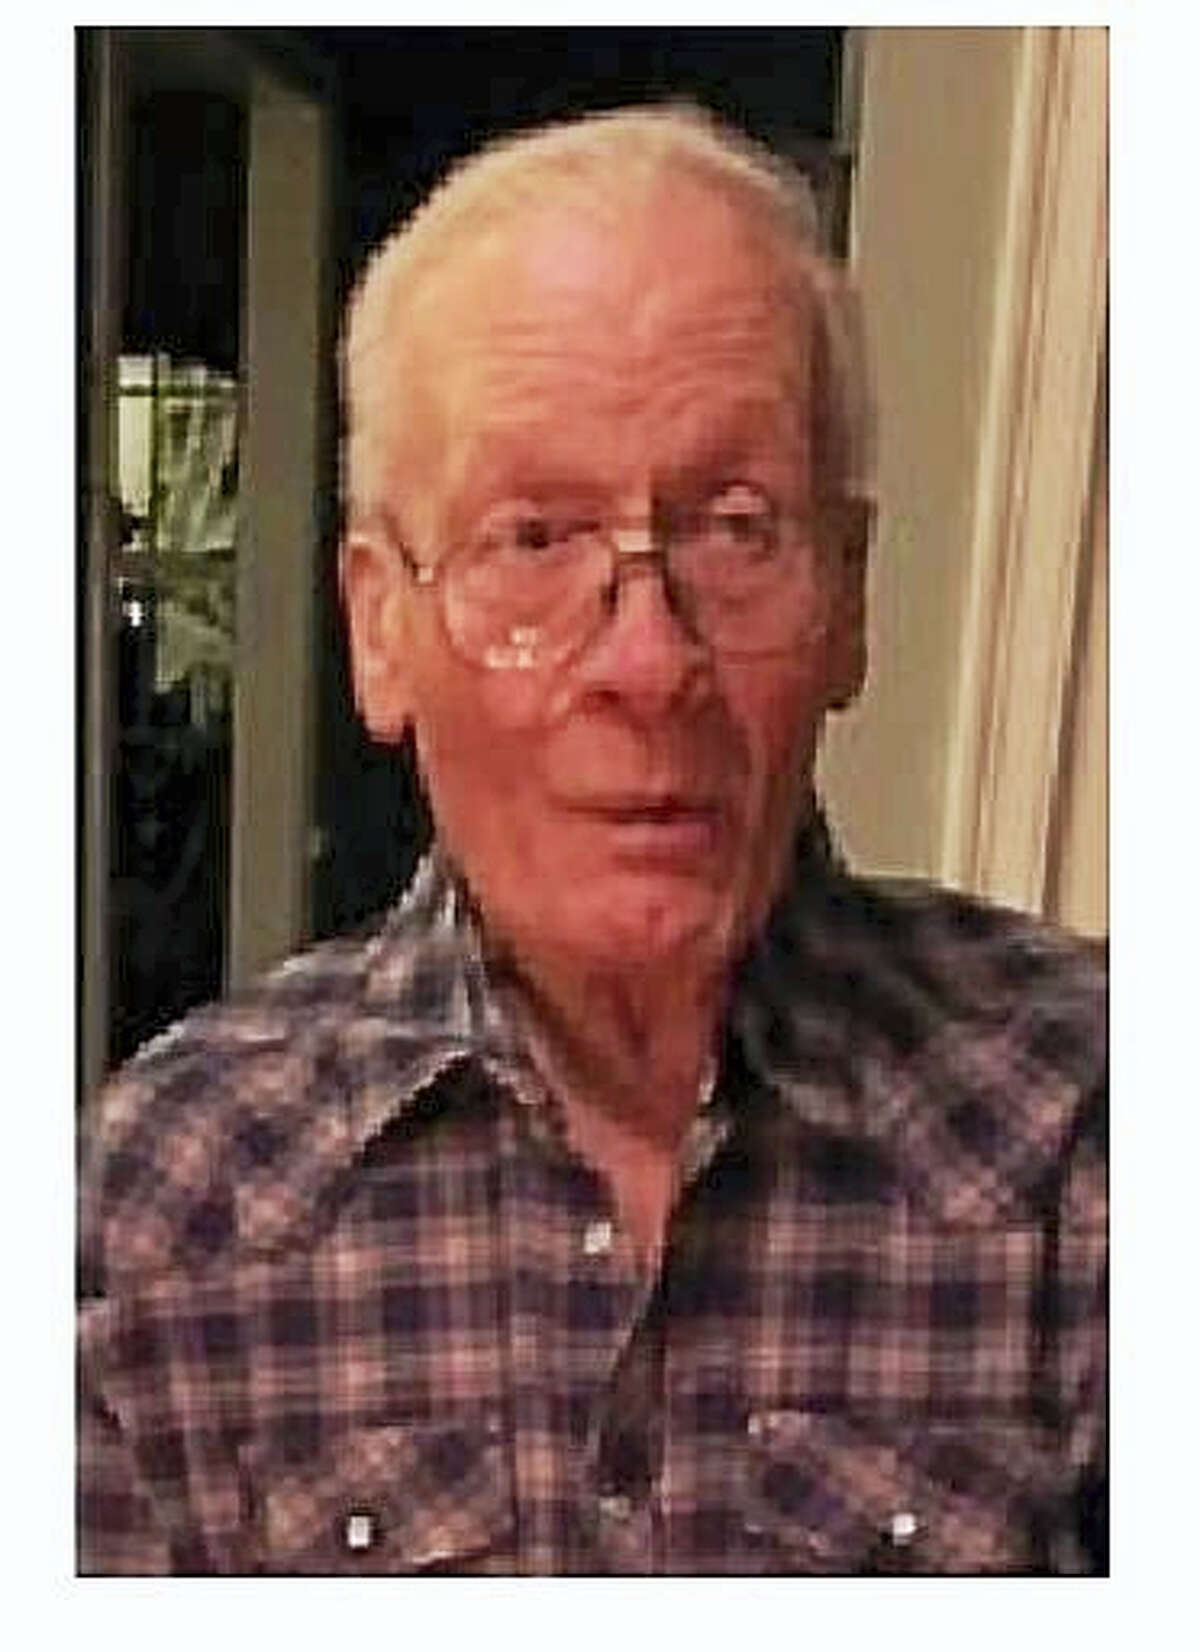 Armand Gorneault of New Hartford has been found after being reported missing Sunday, April 23, 2017. (Photo courtesy of Connecticut State Police)